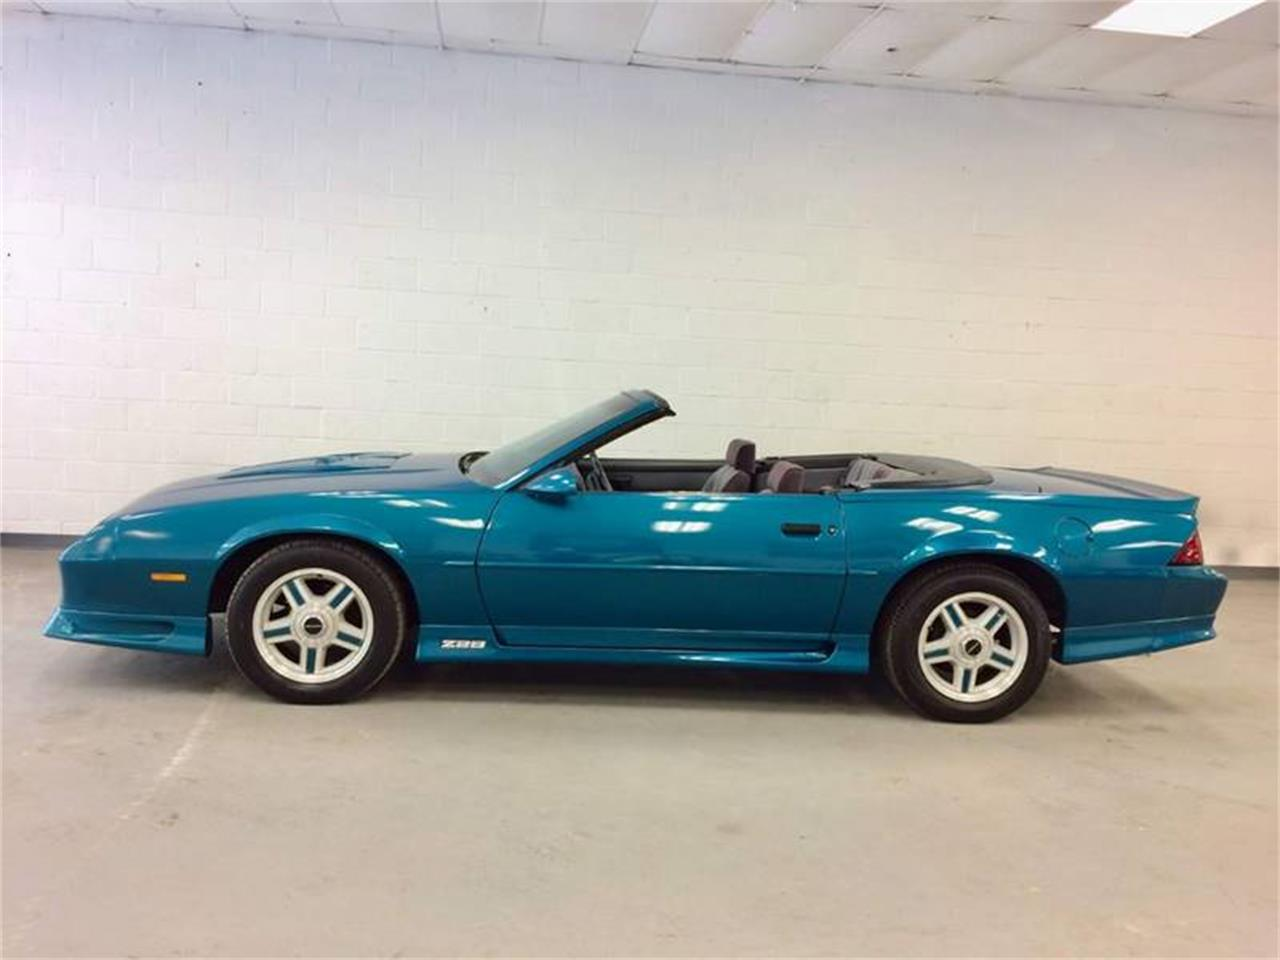 Large Picture of '92 Camaro - $12,995.00 Offered by Excite Motorsports - Q4F9